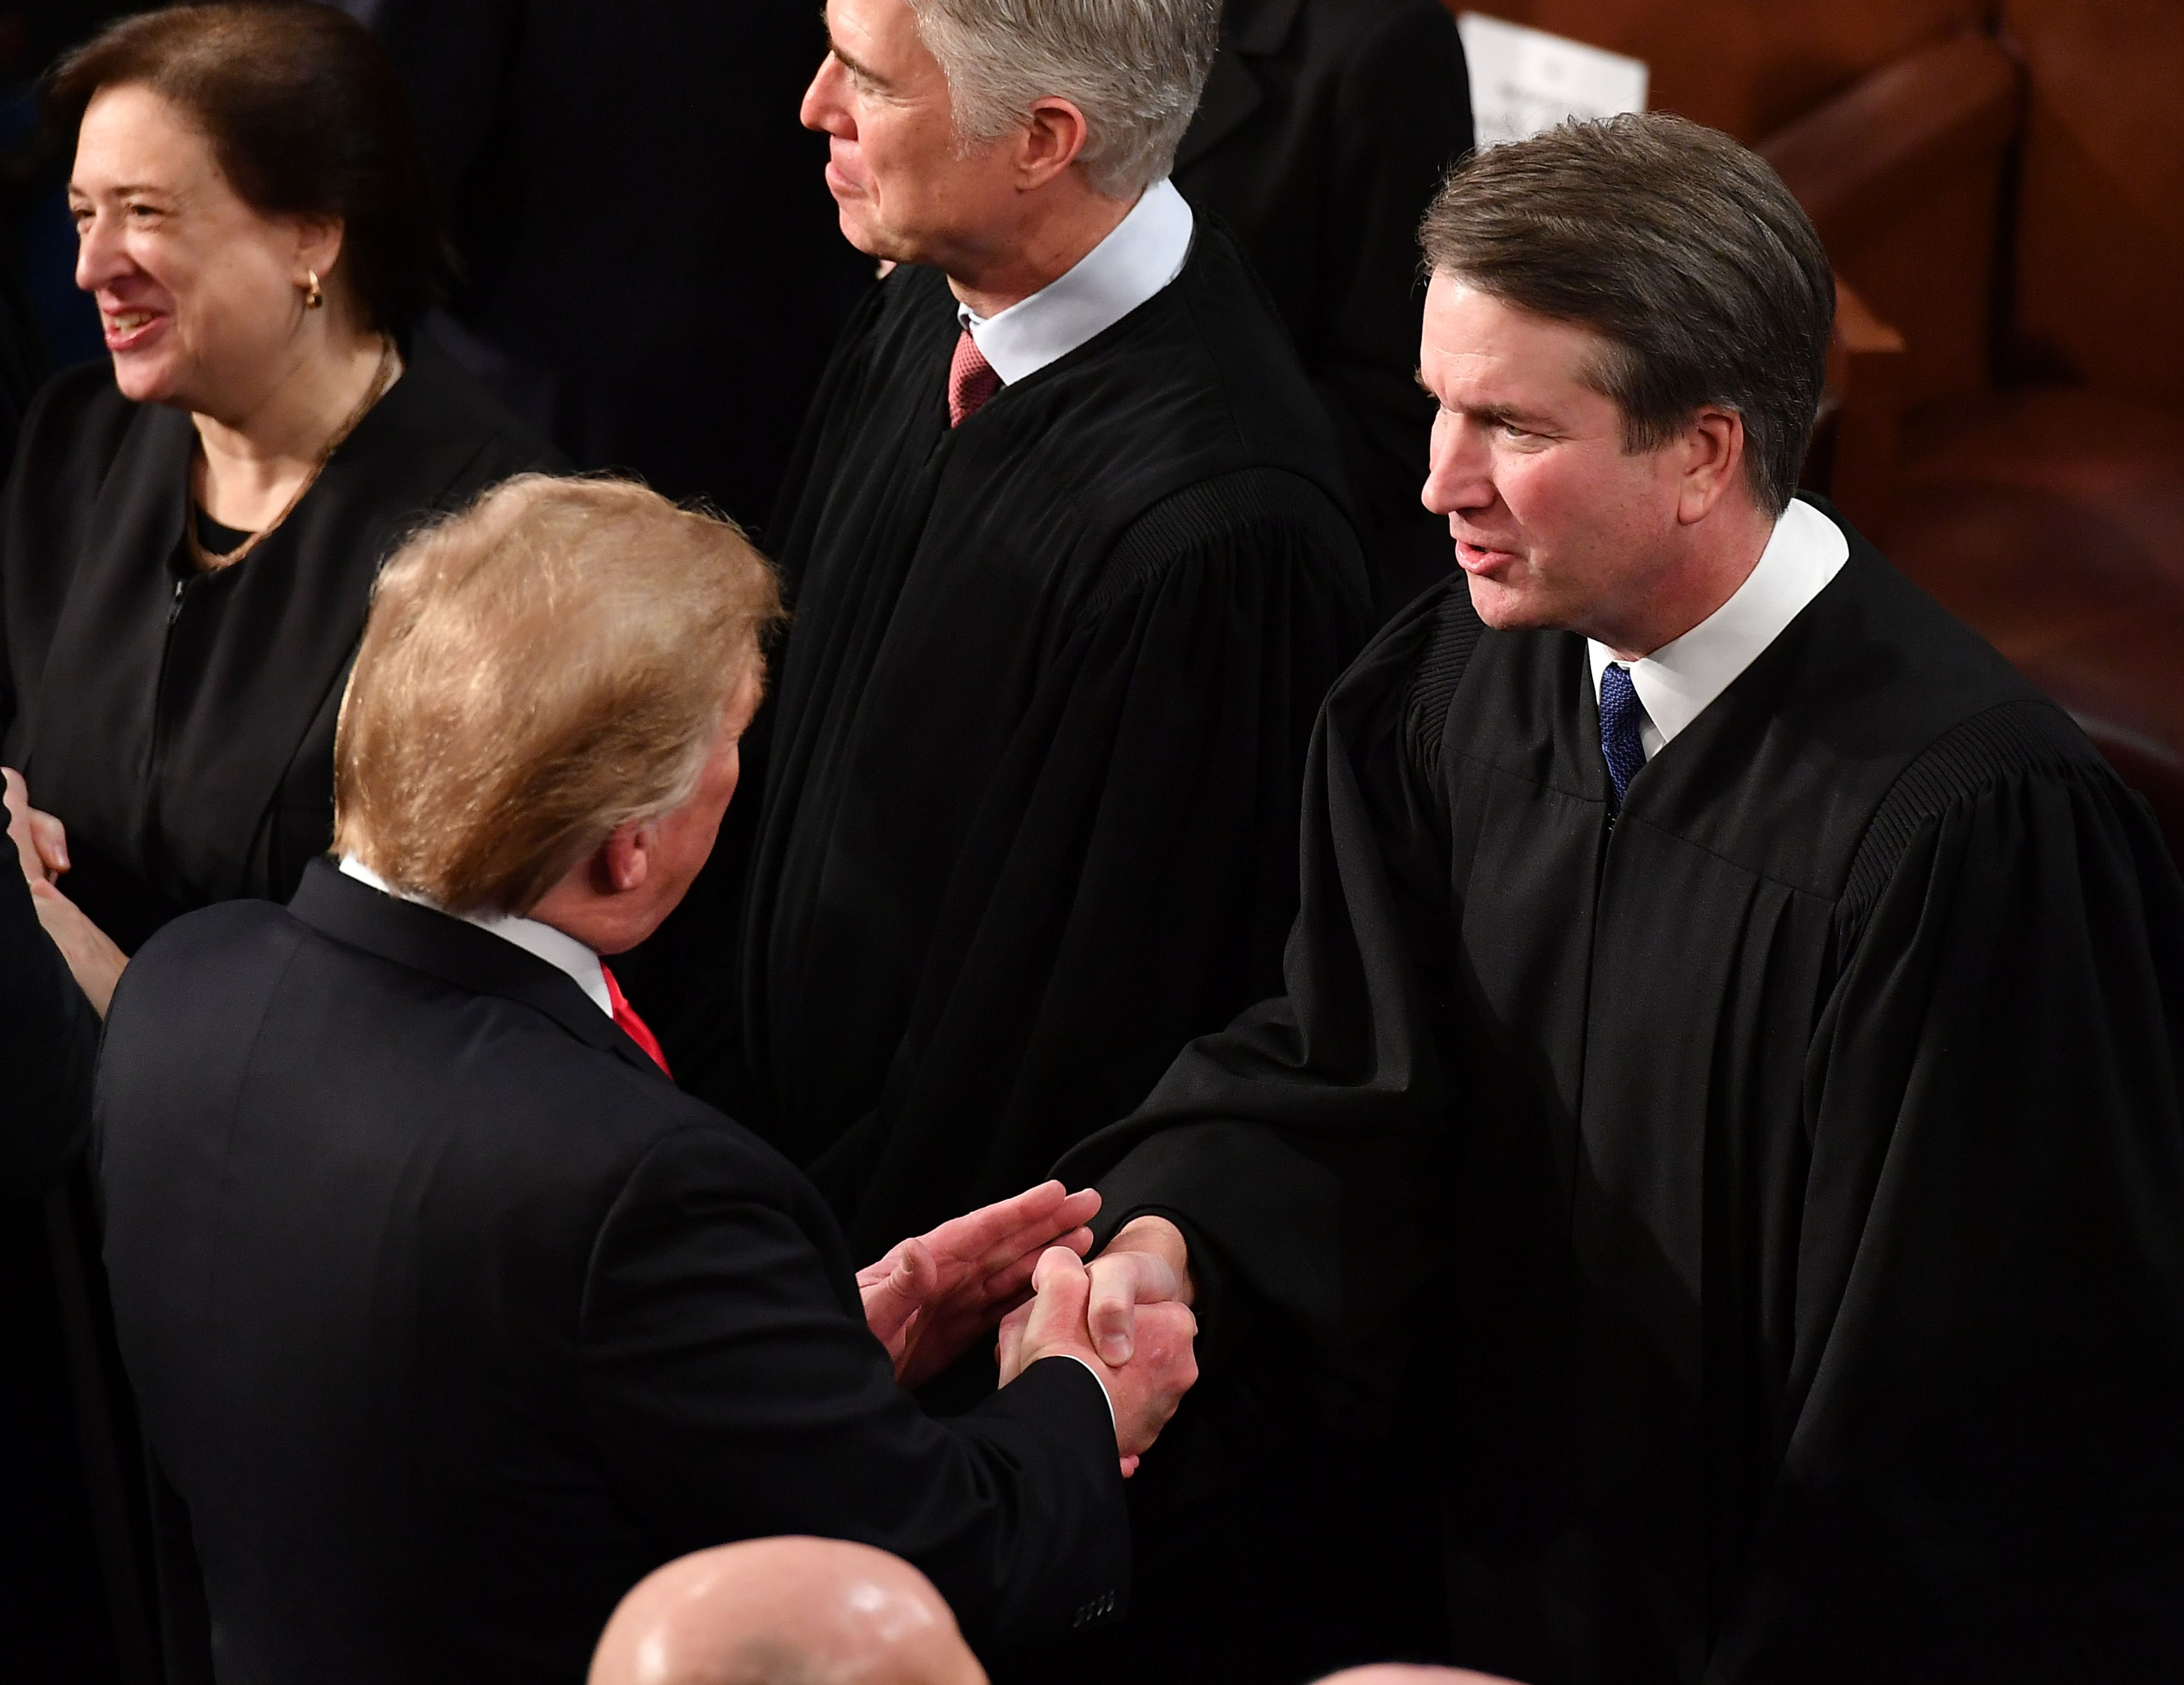 President Donald Trump shakes hands with Justice Brett Kavanaugh before delivering the State of the Union address on February 5, 2019. (Mandel Ngan/AFP/Getty Images)